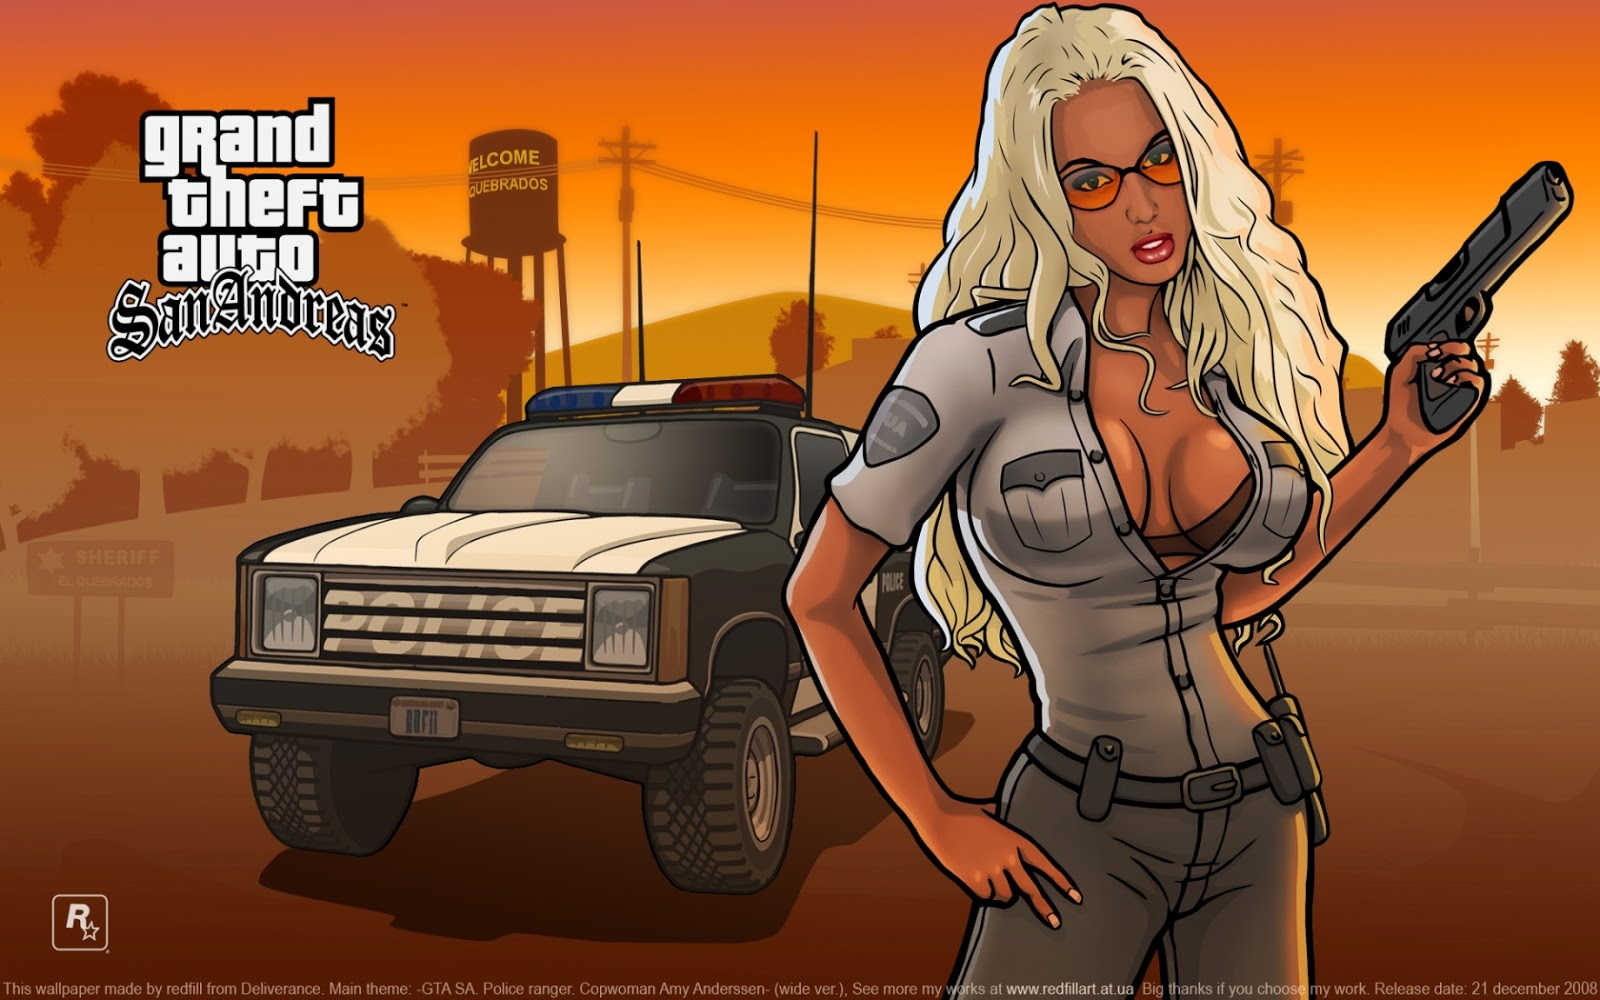 gta san andreas Grand theft auto gta san andreas is an open world action game similar to other grand theft auto titles, the game is played from a third person perspective allowing the player to interact with the game world at their leisure by foot or vehicle.